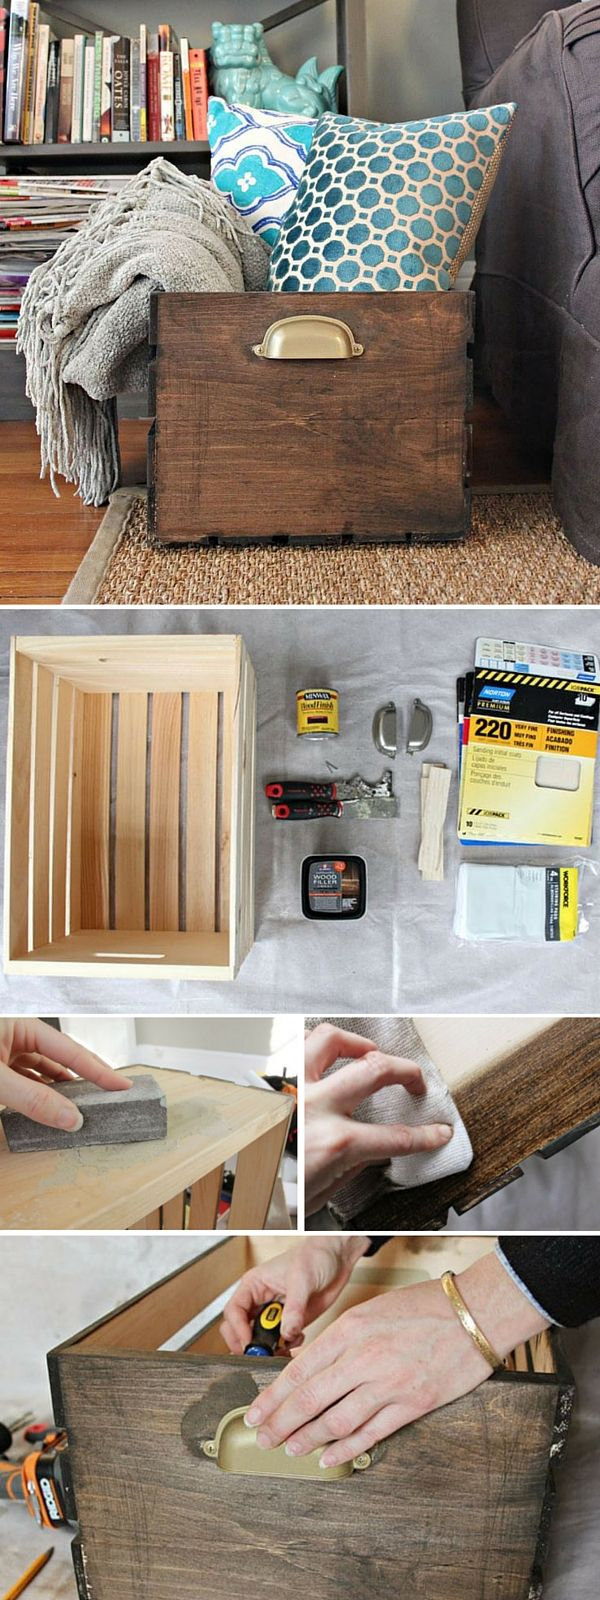 Check out the tutorial: #DIY Storage